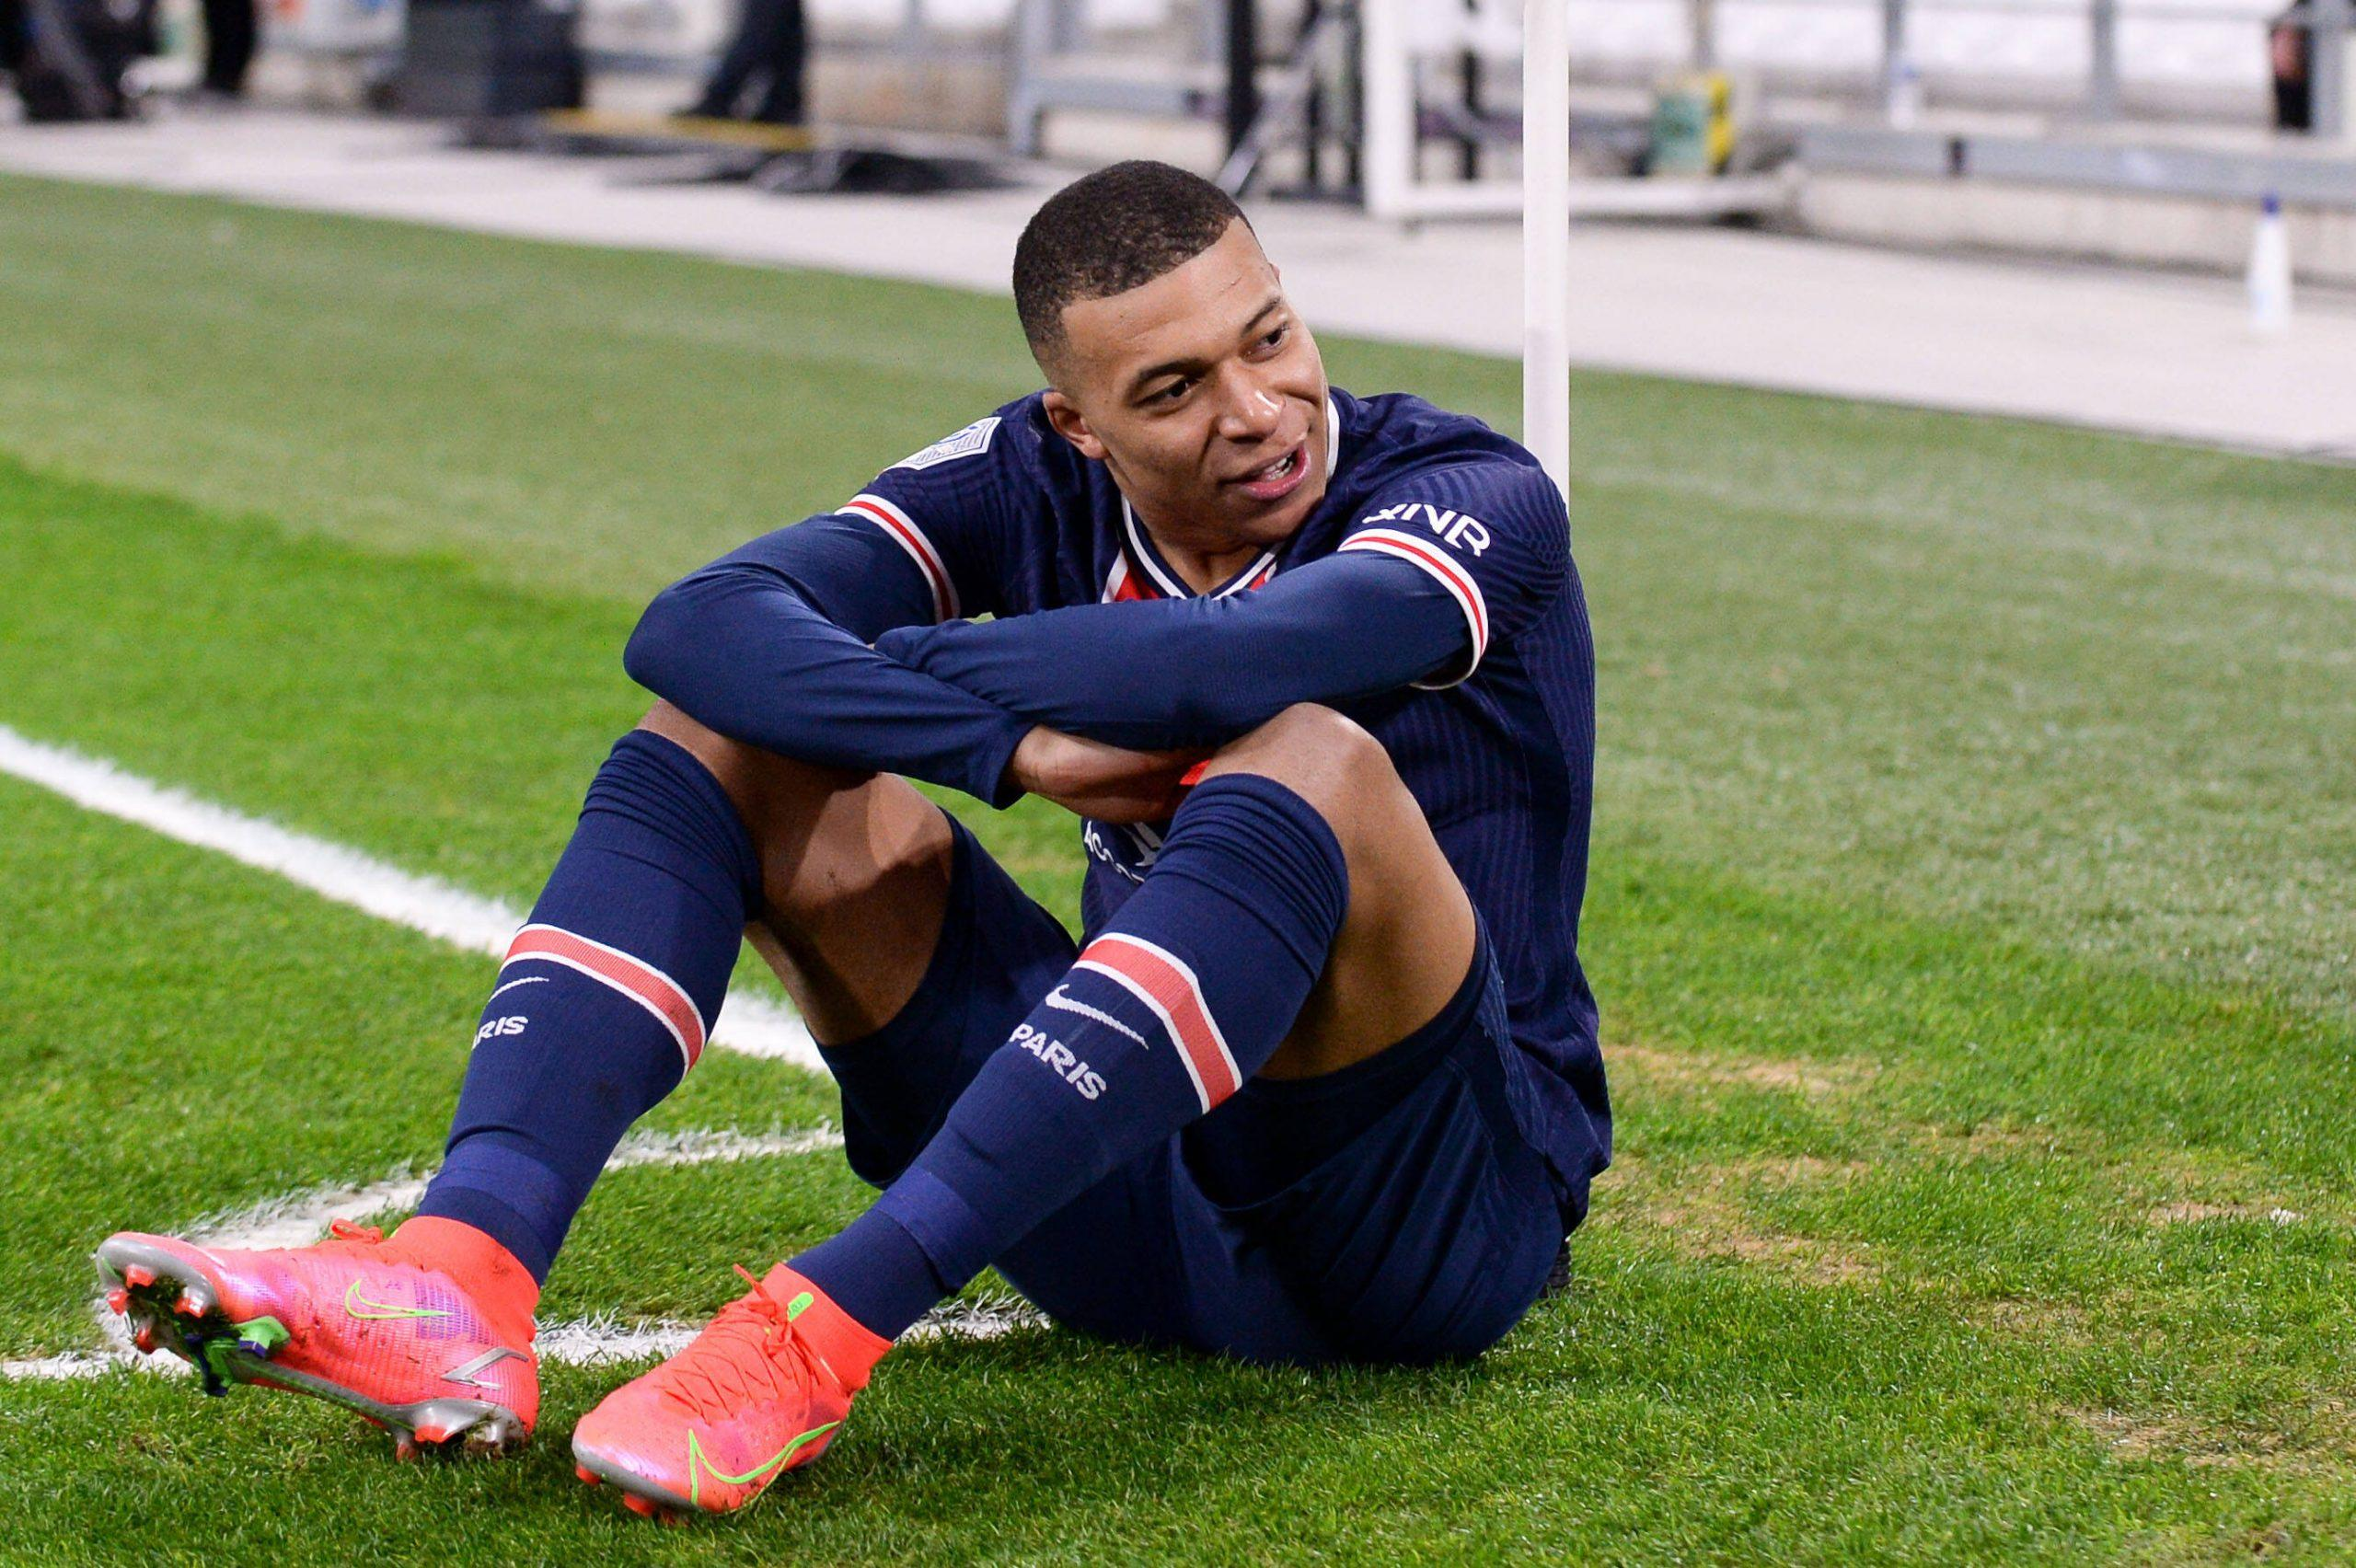 Kylian Mbappé the Conqueror: Tops Messi, Cristiano